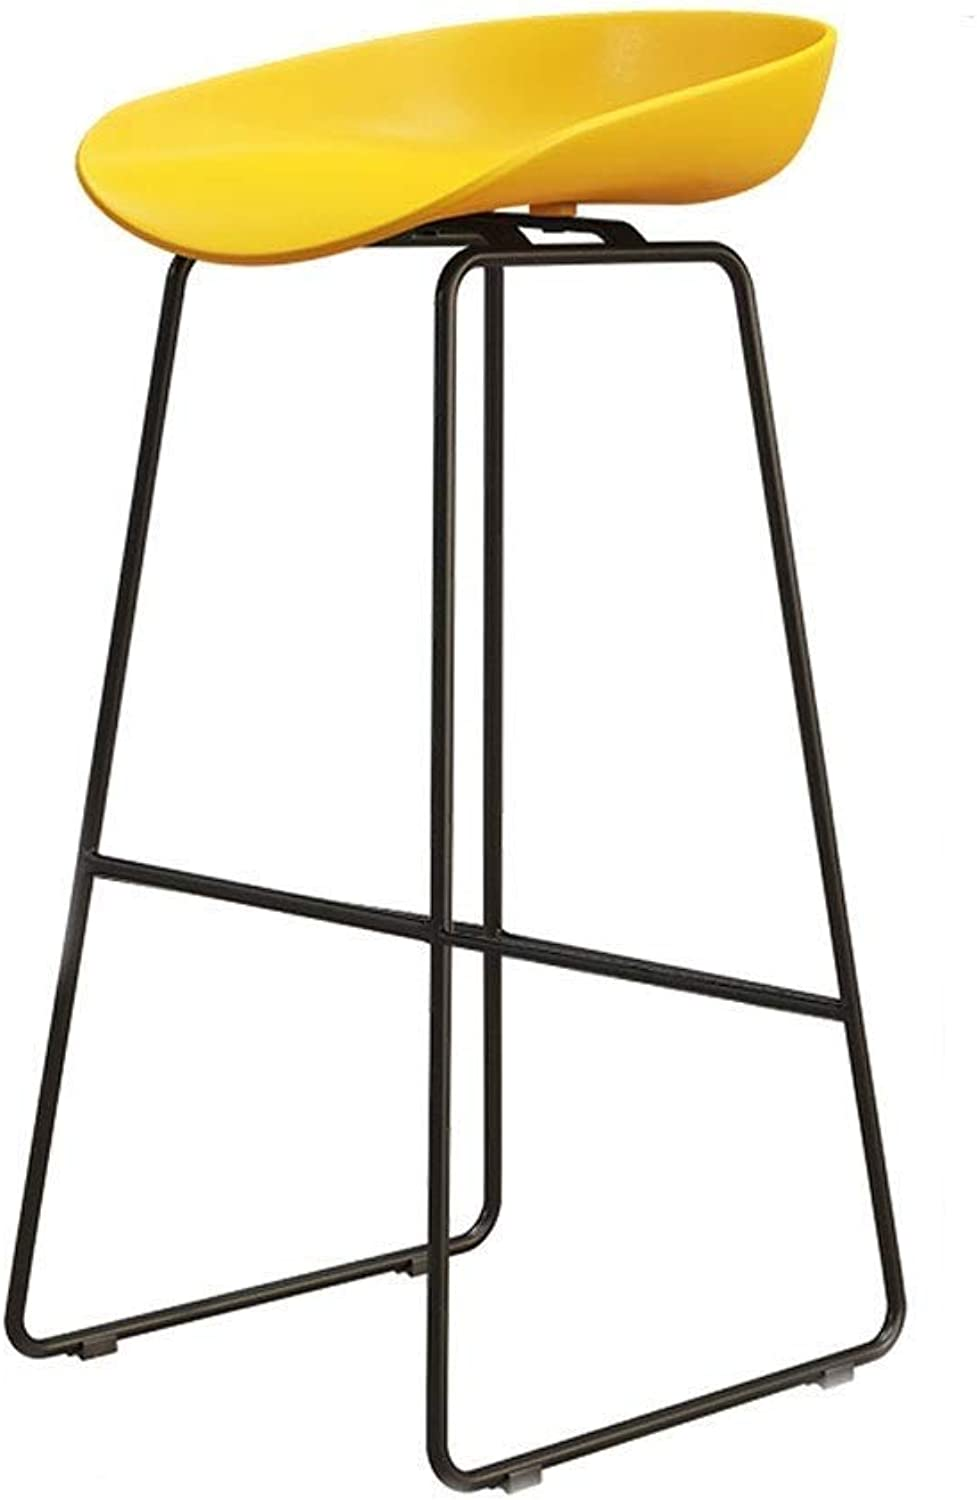 Nordic Wrought Iron Bar Stool High Stool for Family Front Desk Coffee Shop Kitchen Multi-color Size Optional (color   Yellow, Size   42  44  45cm)